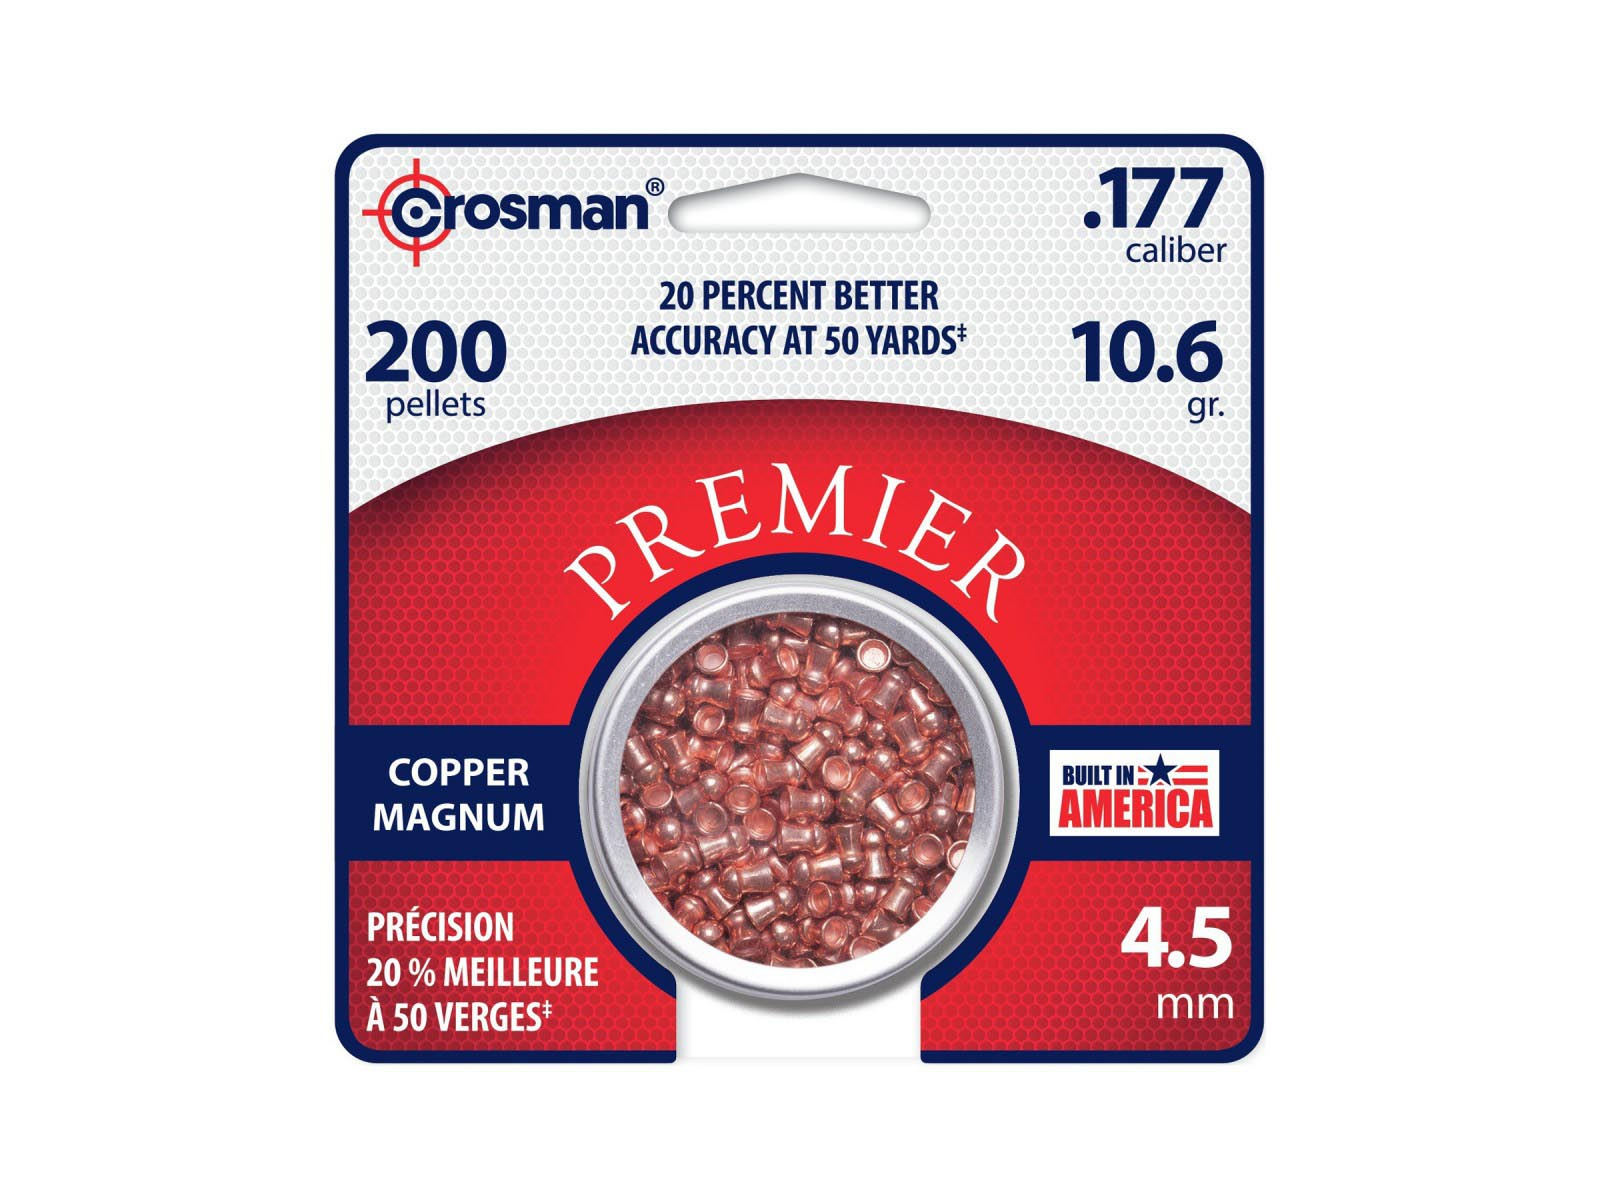 Crosman Premier Copper Magnum .177 Cal, 10.6 gr - 200 ct